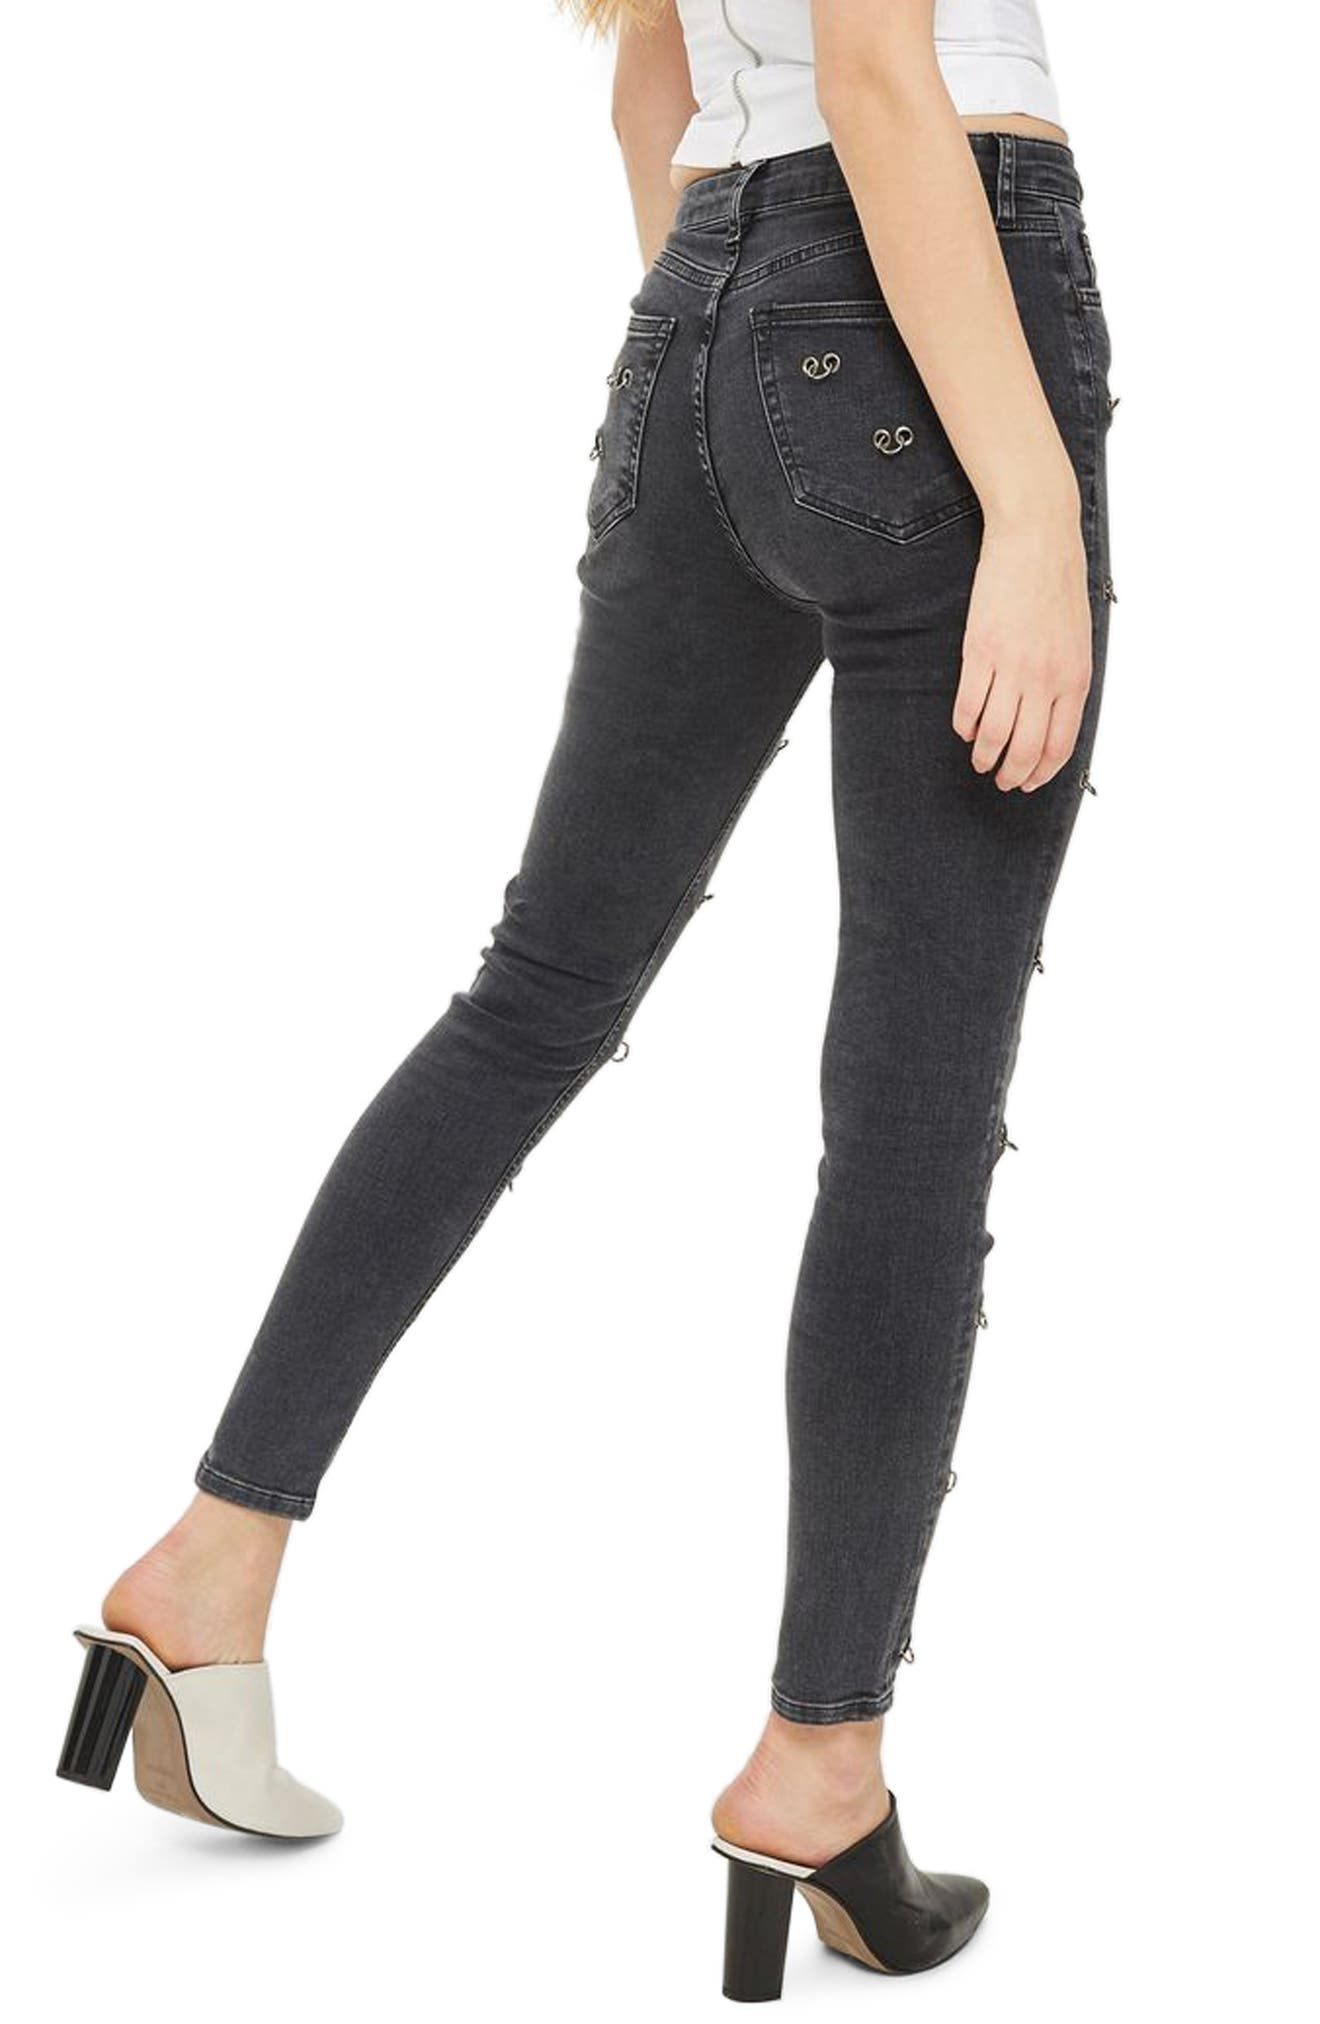 Jamie Pierced Stretch Skinny Jeans,                             Alternate thumbnail 2, color,                             001